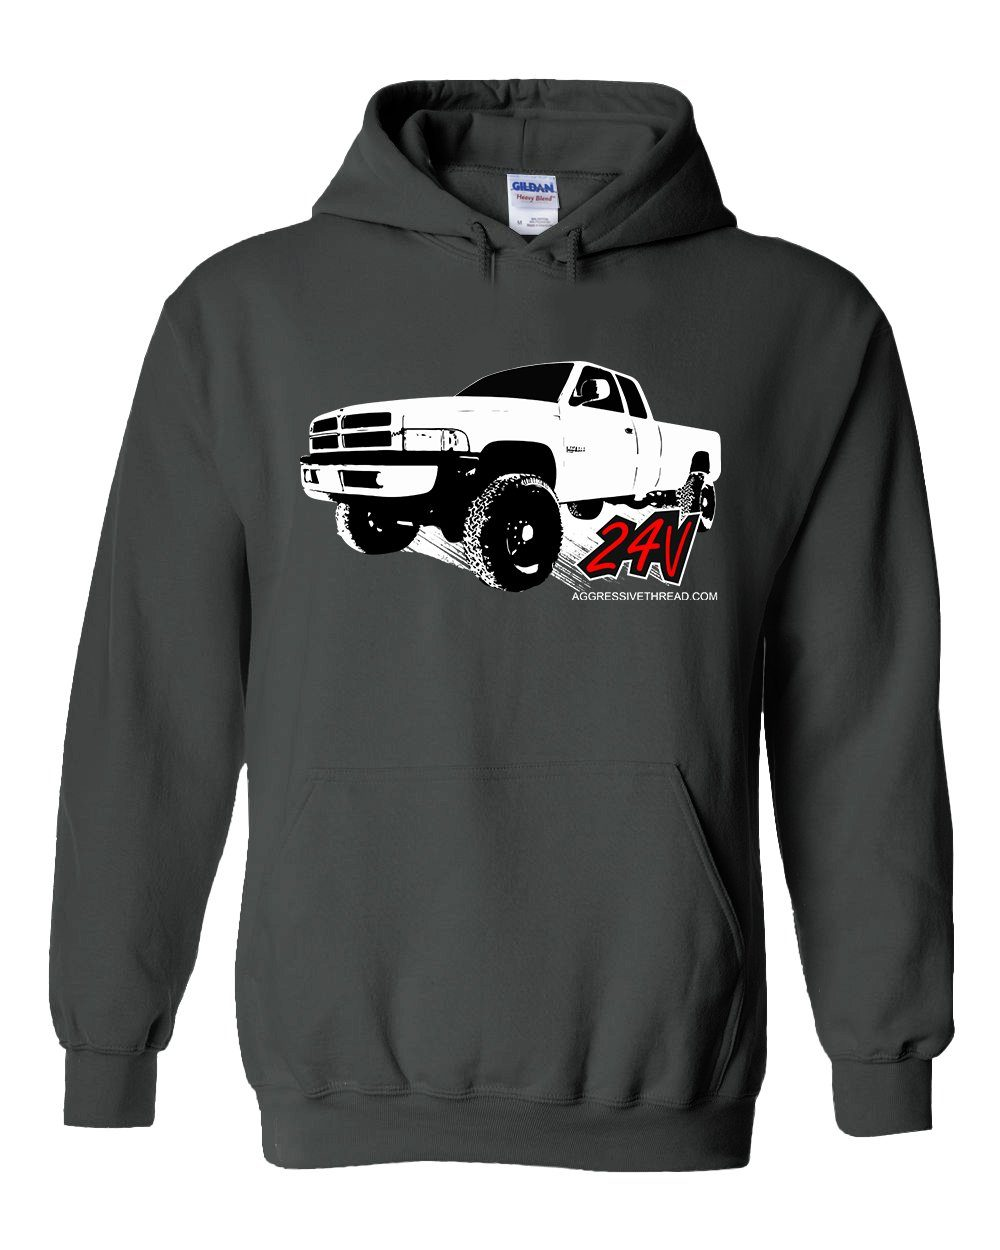 Cummins 24v 5.9 Second Gen Dodge Ram Hoodie